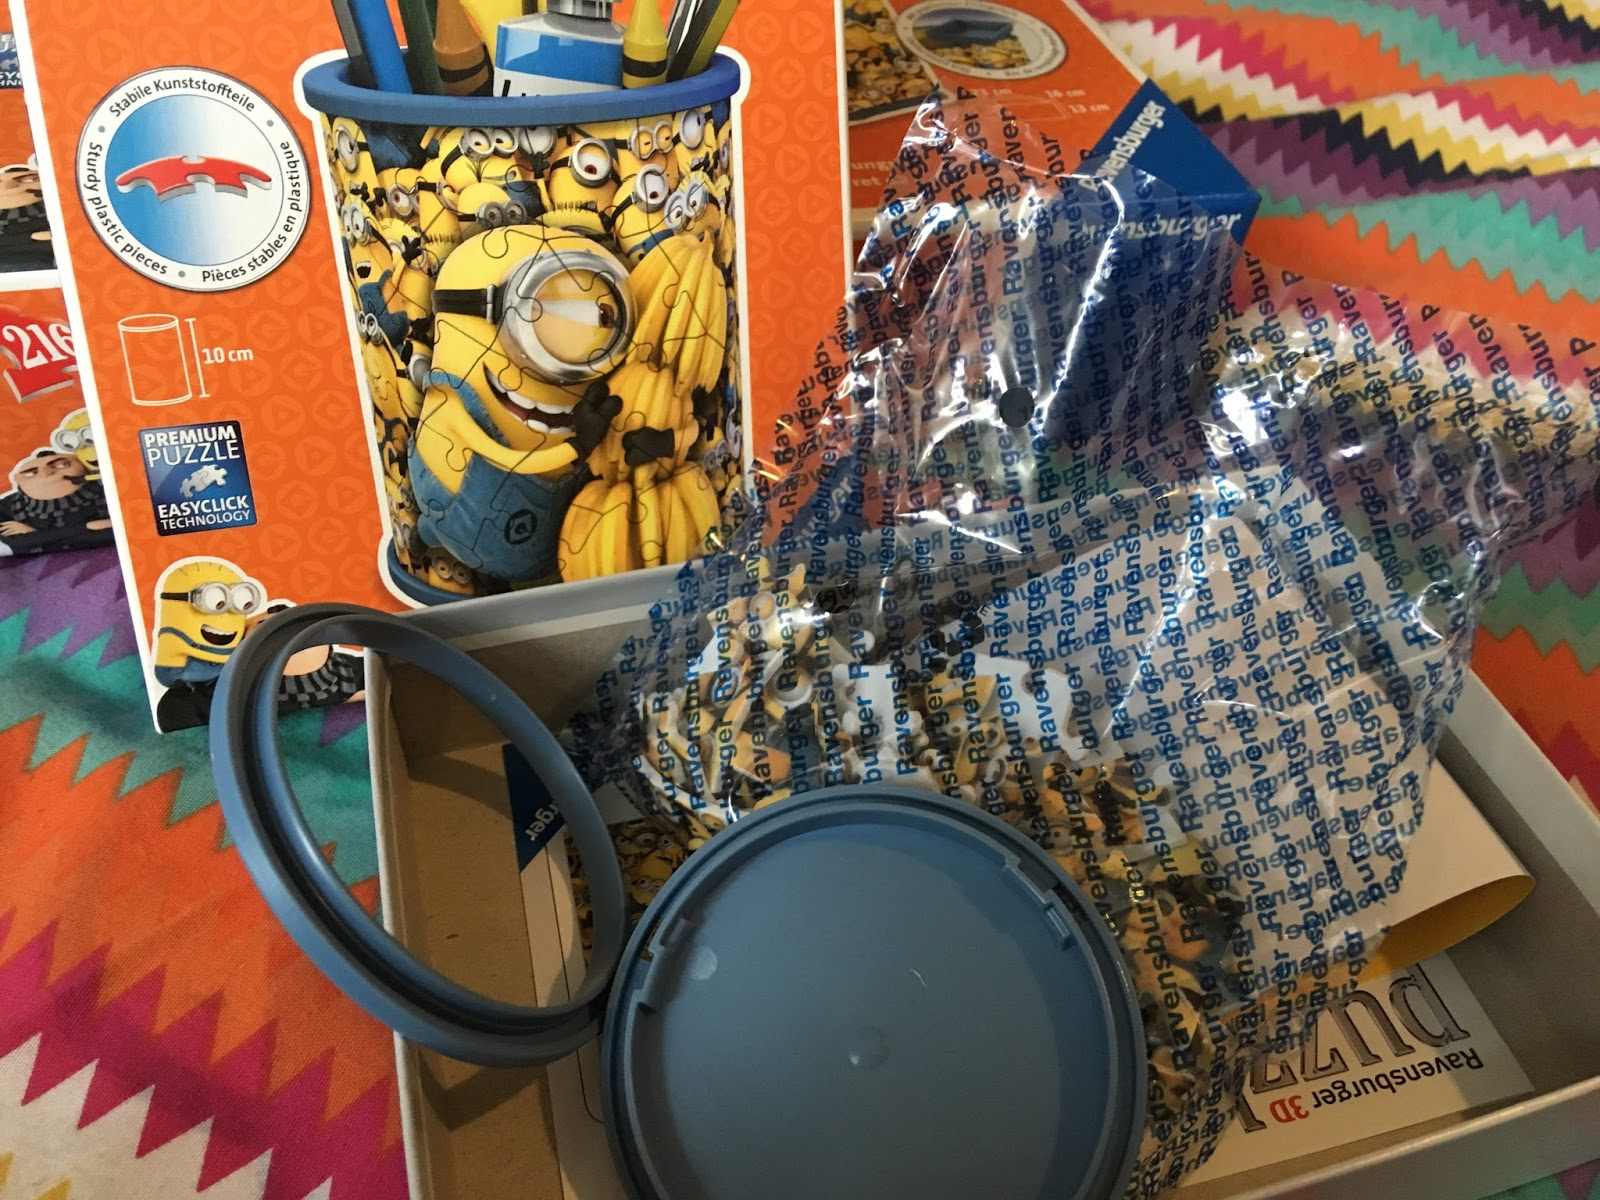 We Were Contacted And Asked If Would Like To Try Out Some 3d Puzzles From Ravensburger Based On Despicable Me 3 The Kids Love All Things Minions So Of